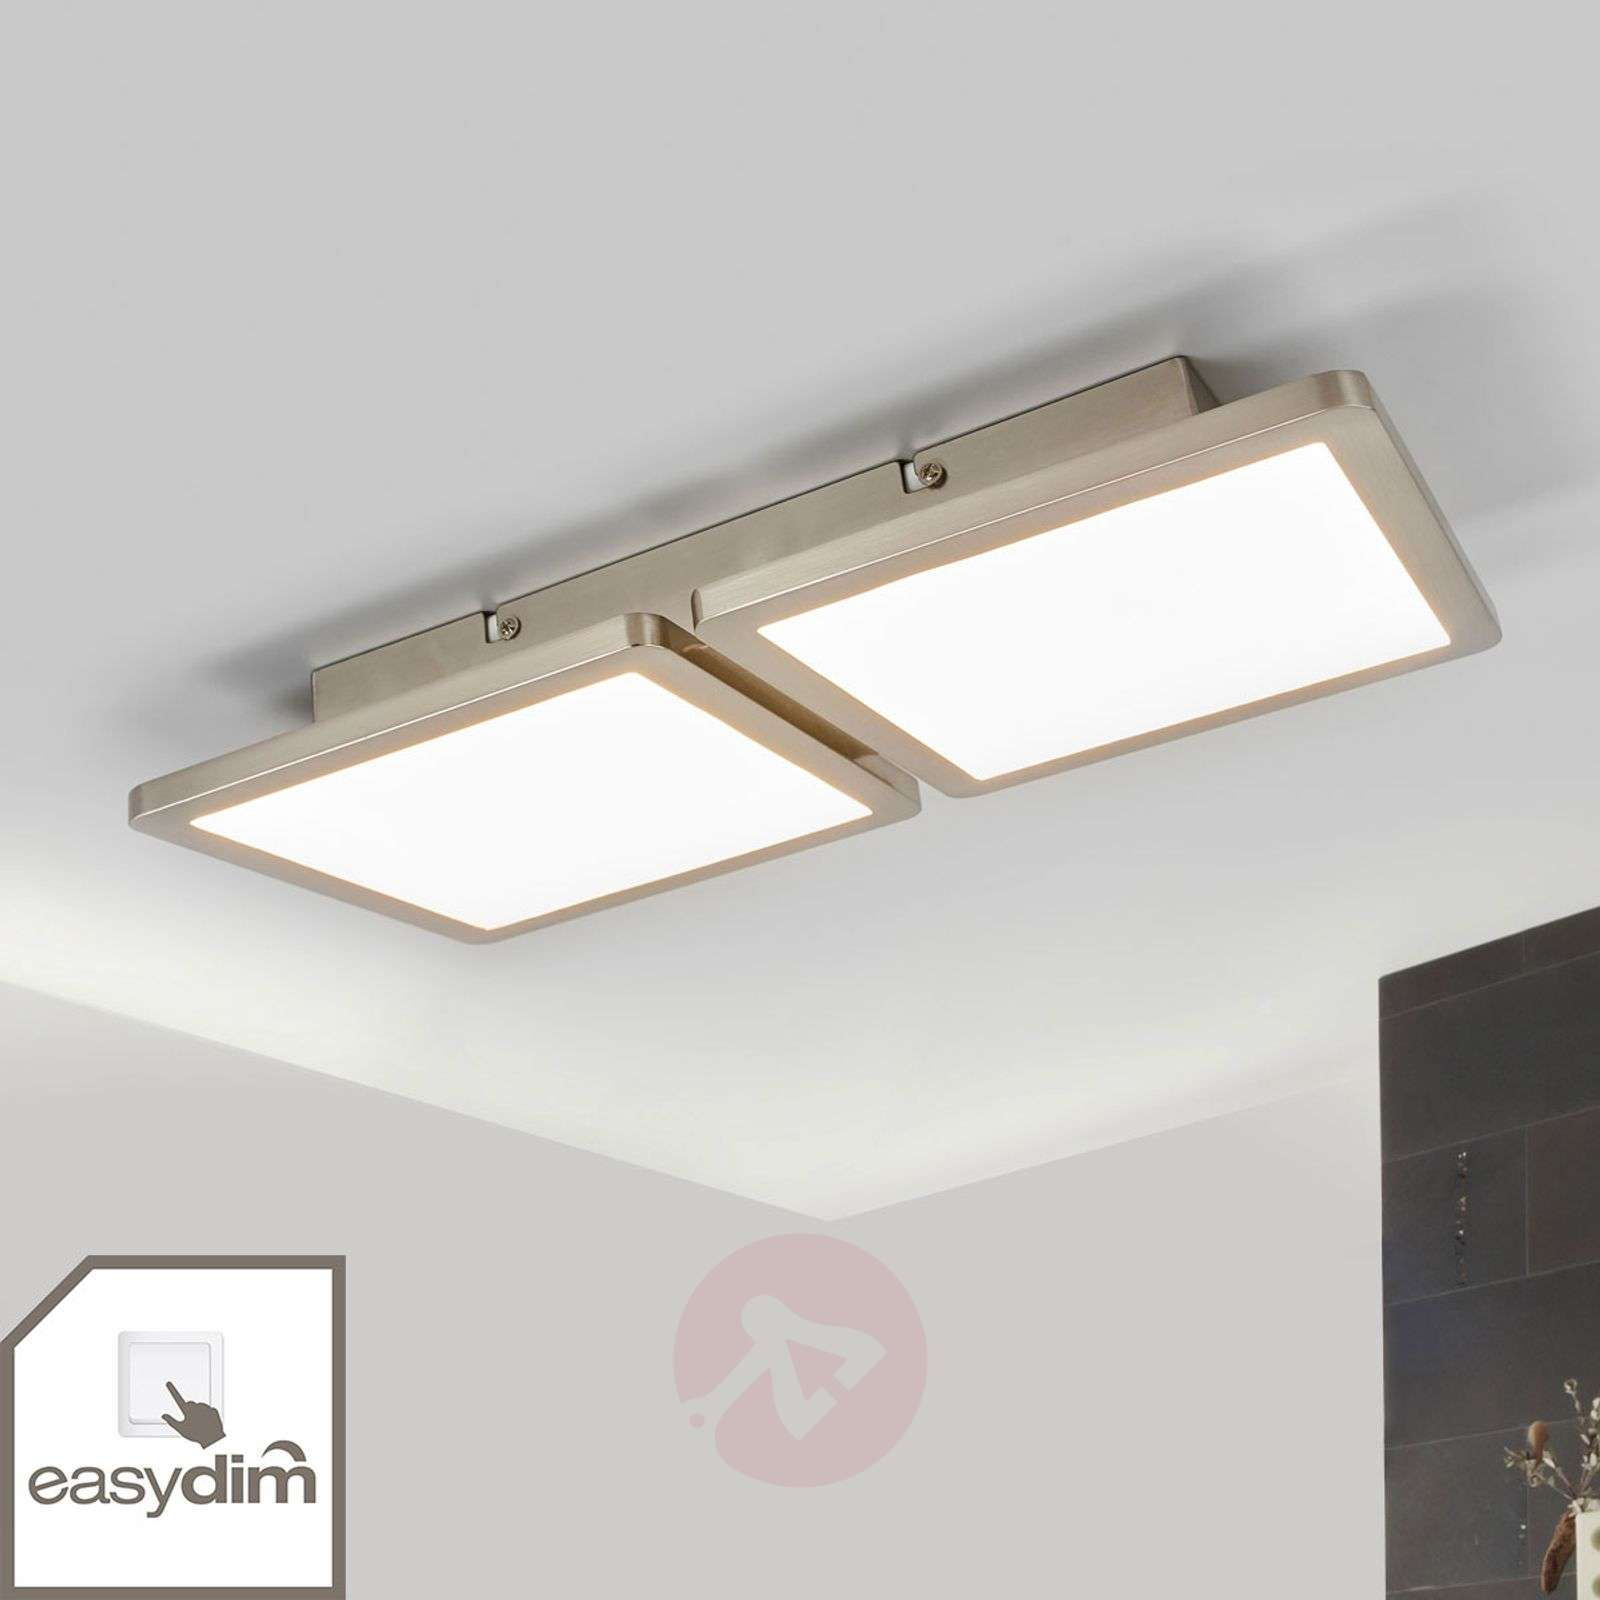 Plafoniere Led Garage : Acquista aileen plafoniera led a 2 luci con easydim lampade.it